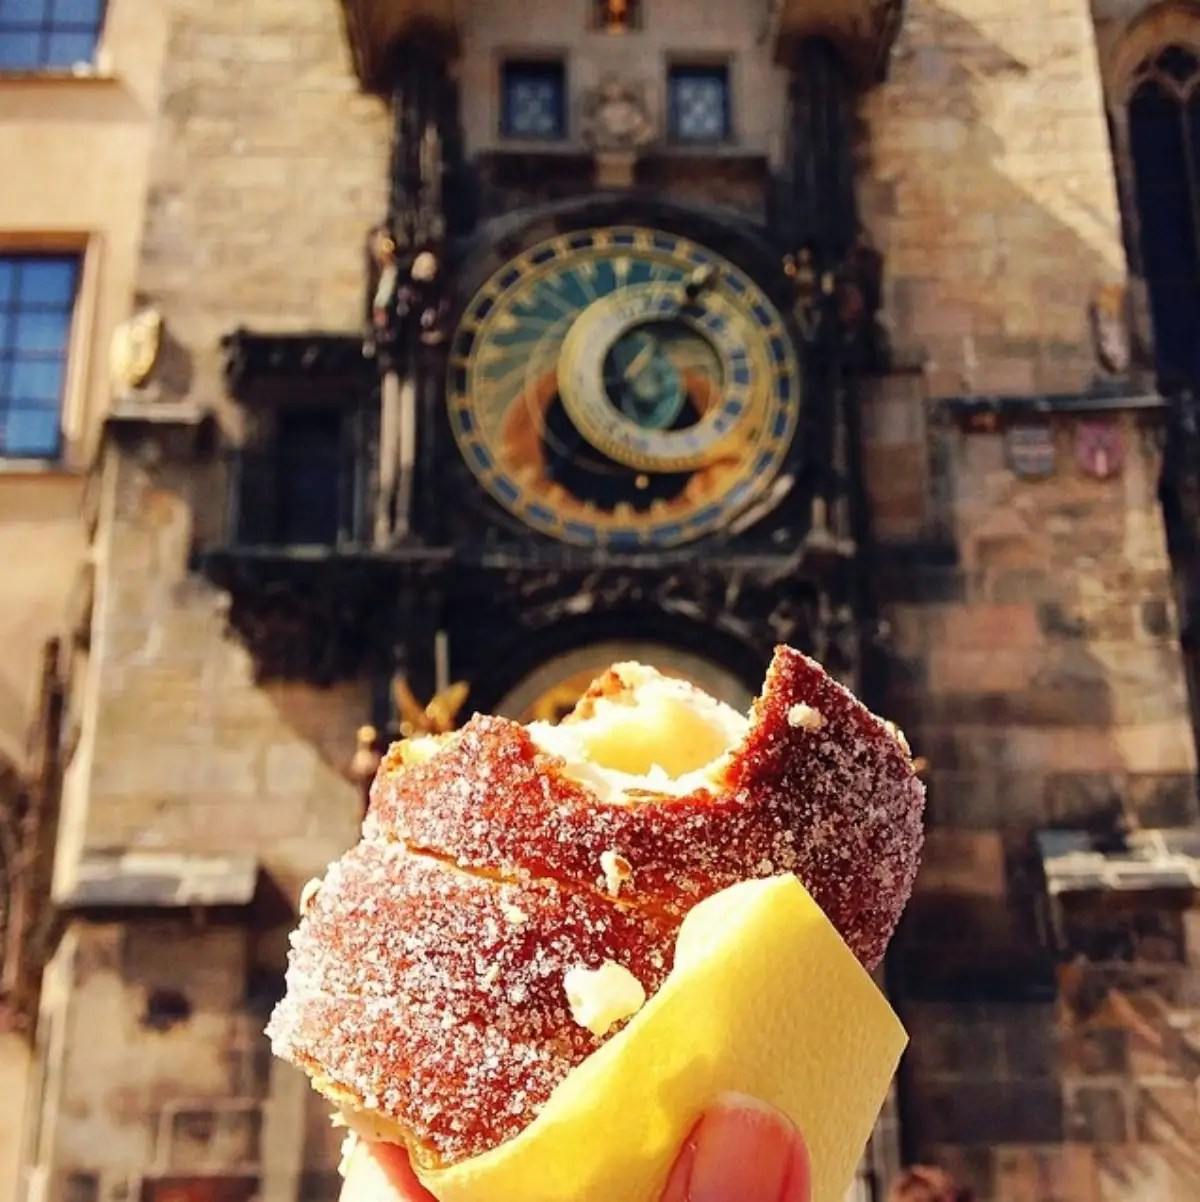 Trdelník in front of the Astronomical Clock in Prague, which is possibly the most impressive clock I have ever seen.